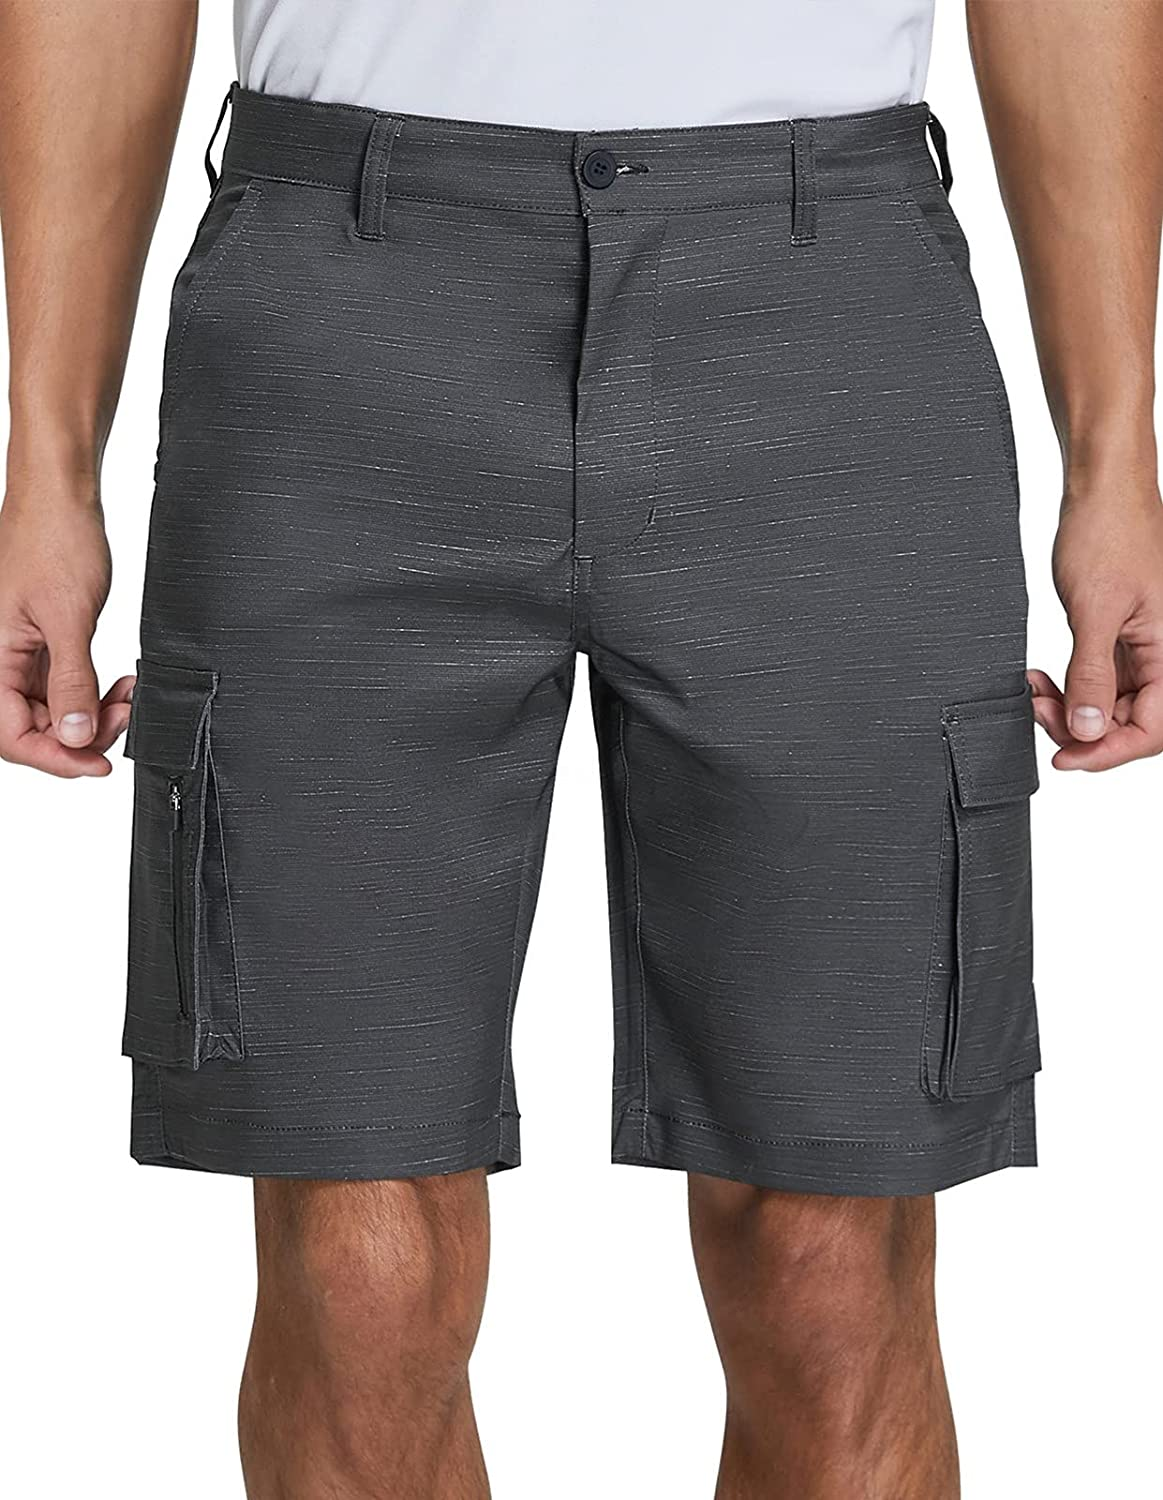 SPECIALMAGIC Men's Hybrid Cargo Shorts Relaxed Fit Lightweight Stretch Quick Dry Summer Board Hiking Golf |